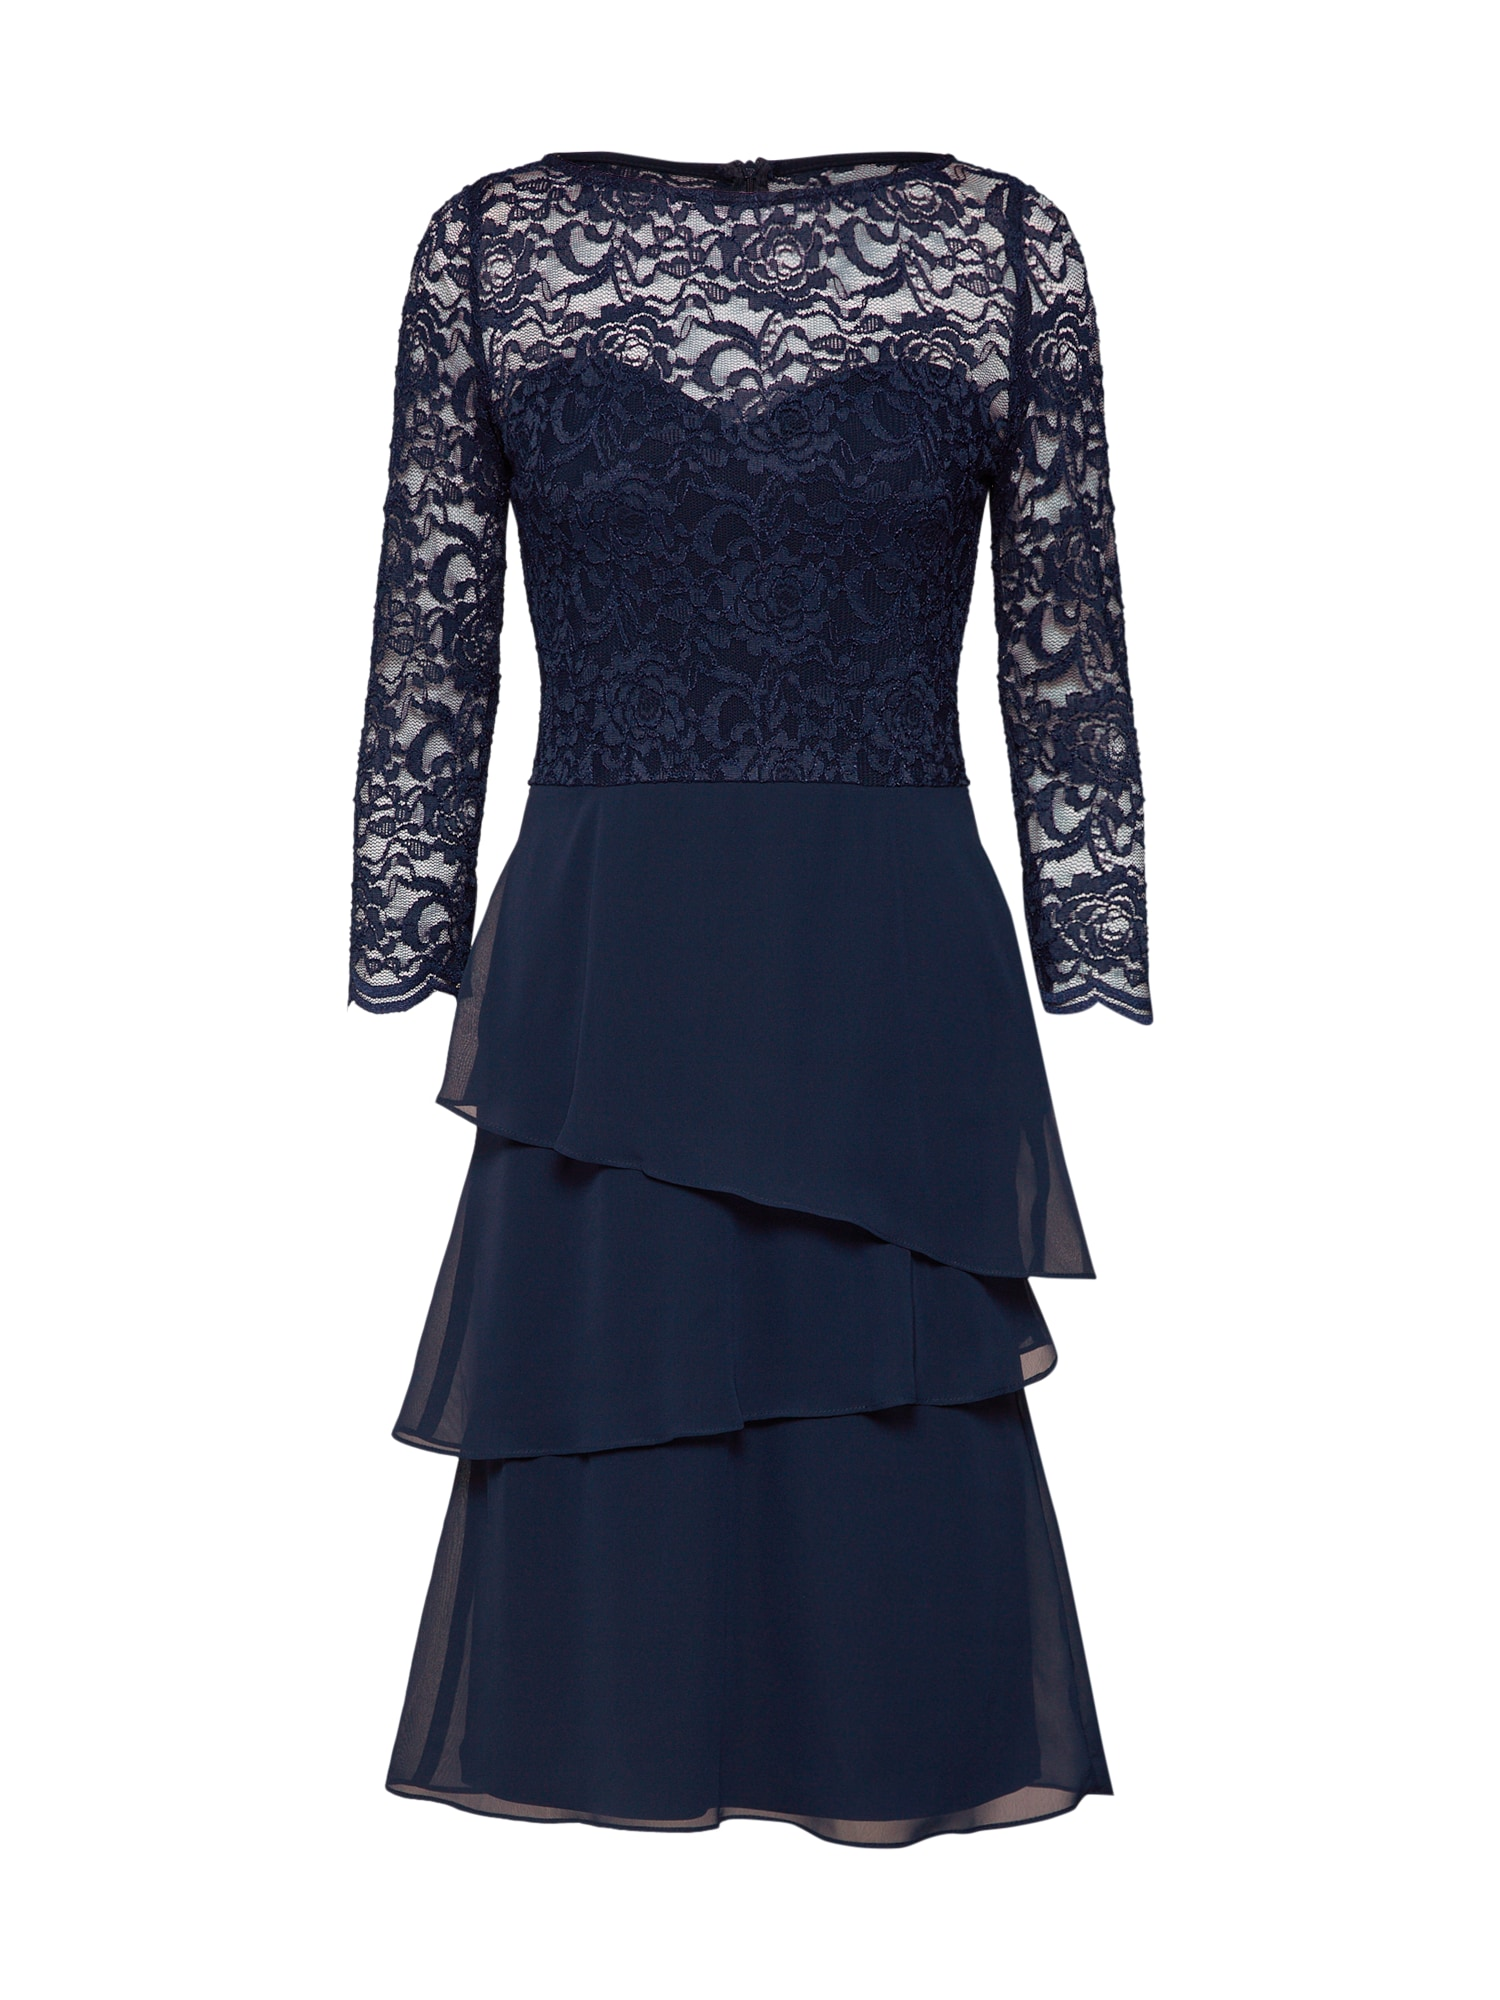 Swing Cocktailjurk 'Cocktailkleid mit Spitzenoberteil' navy